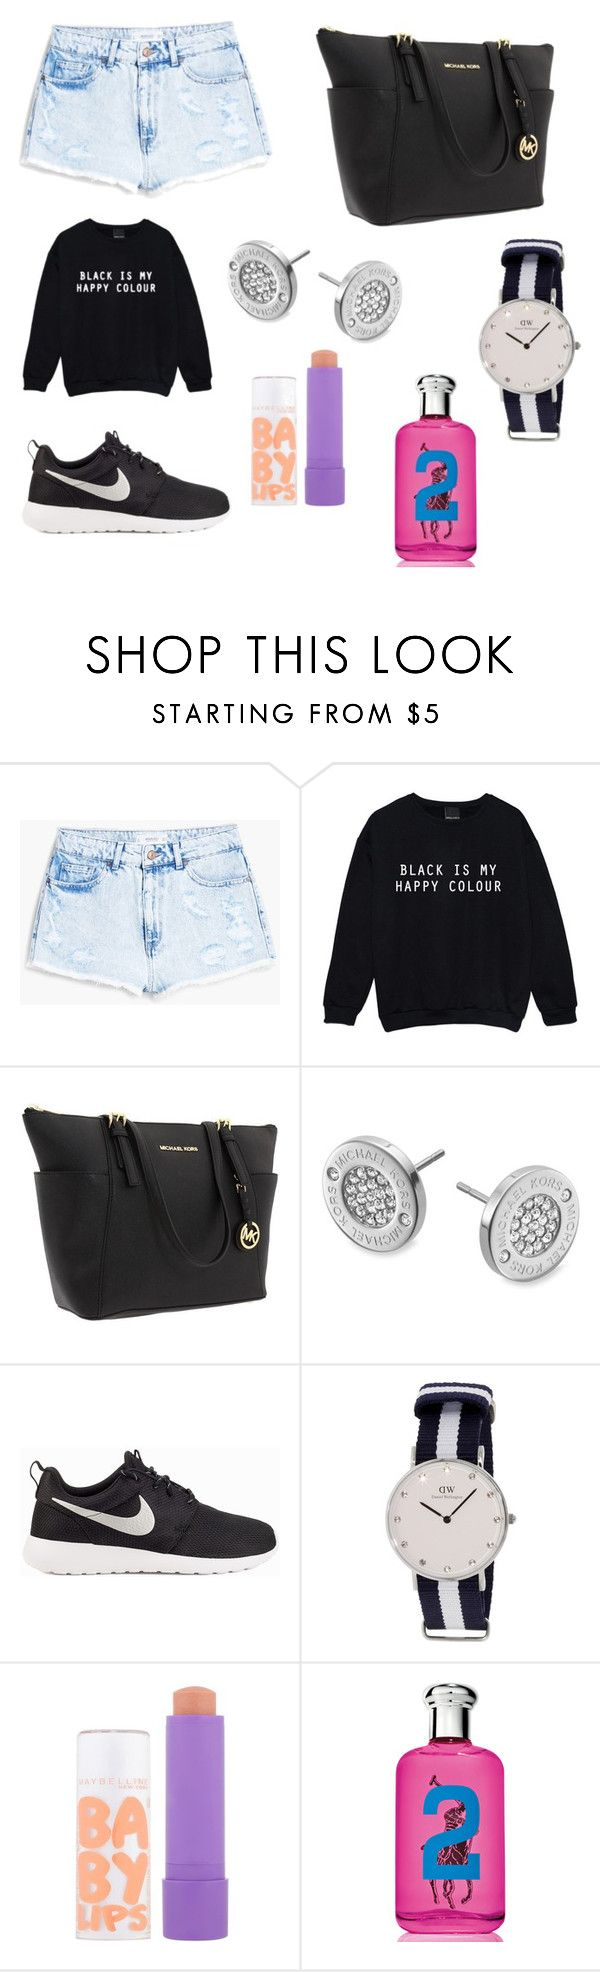 """""""Untitled #9"""" by mariachun on Polyvore featuring MANGO, Michael Kors, NIKE, Maybelline and Ralph Lauren"""